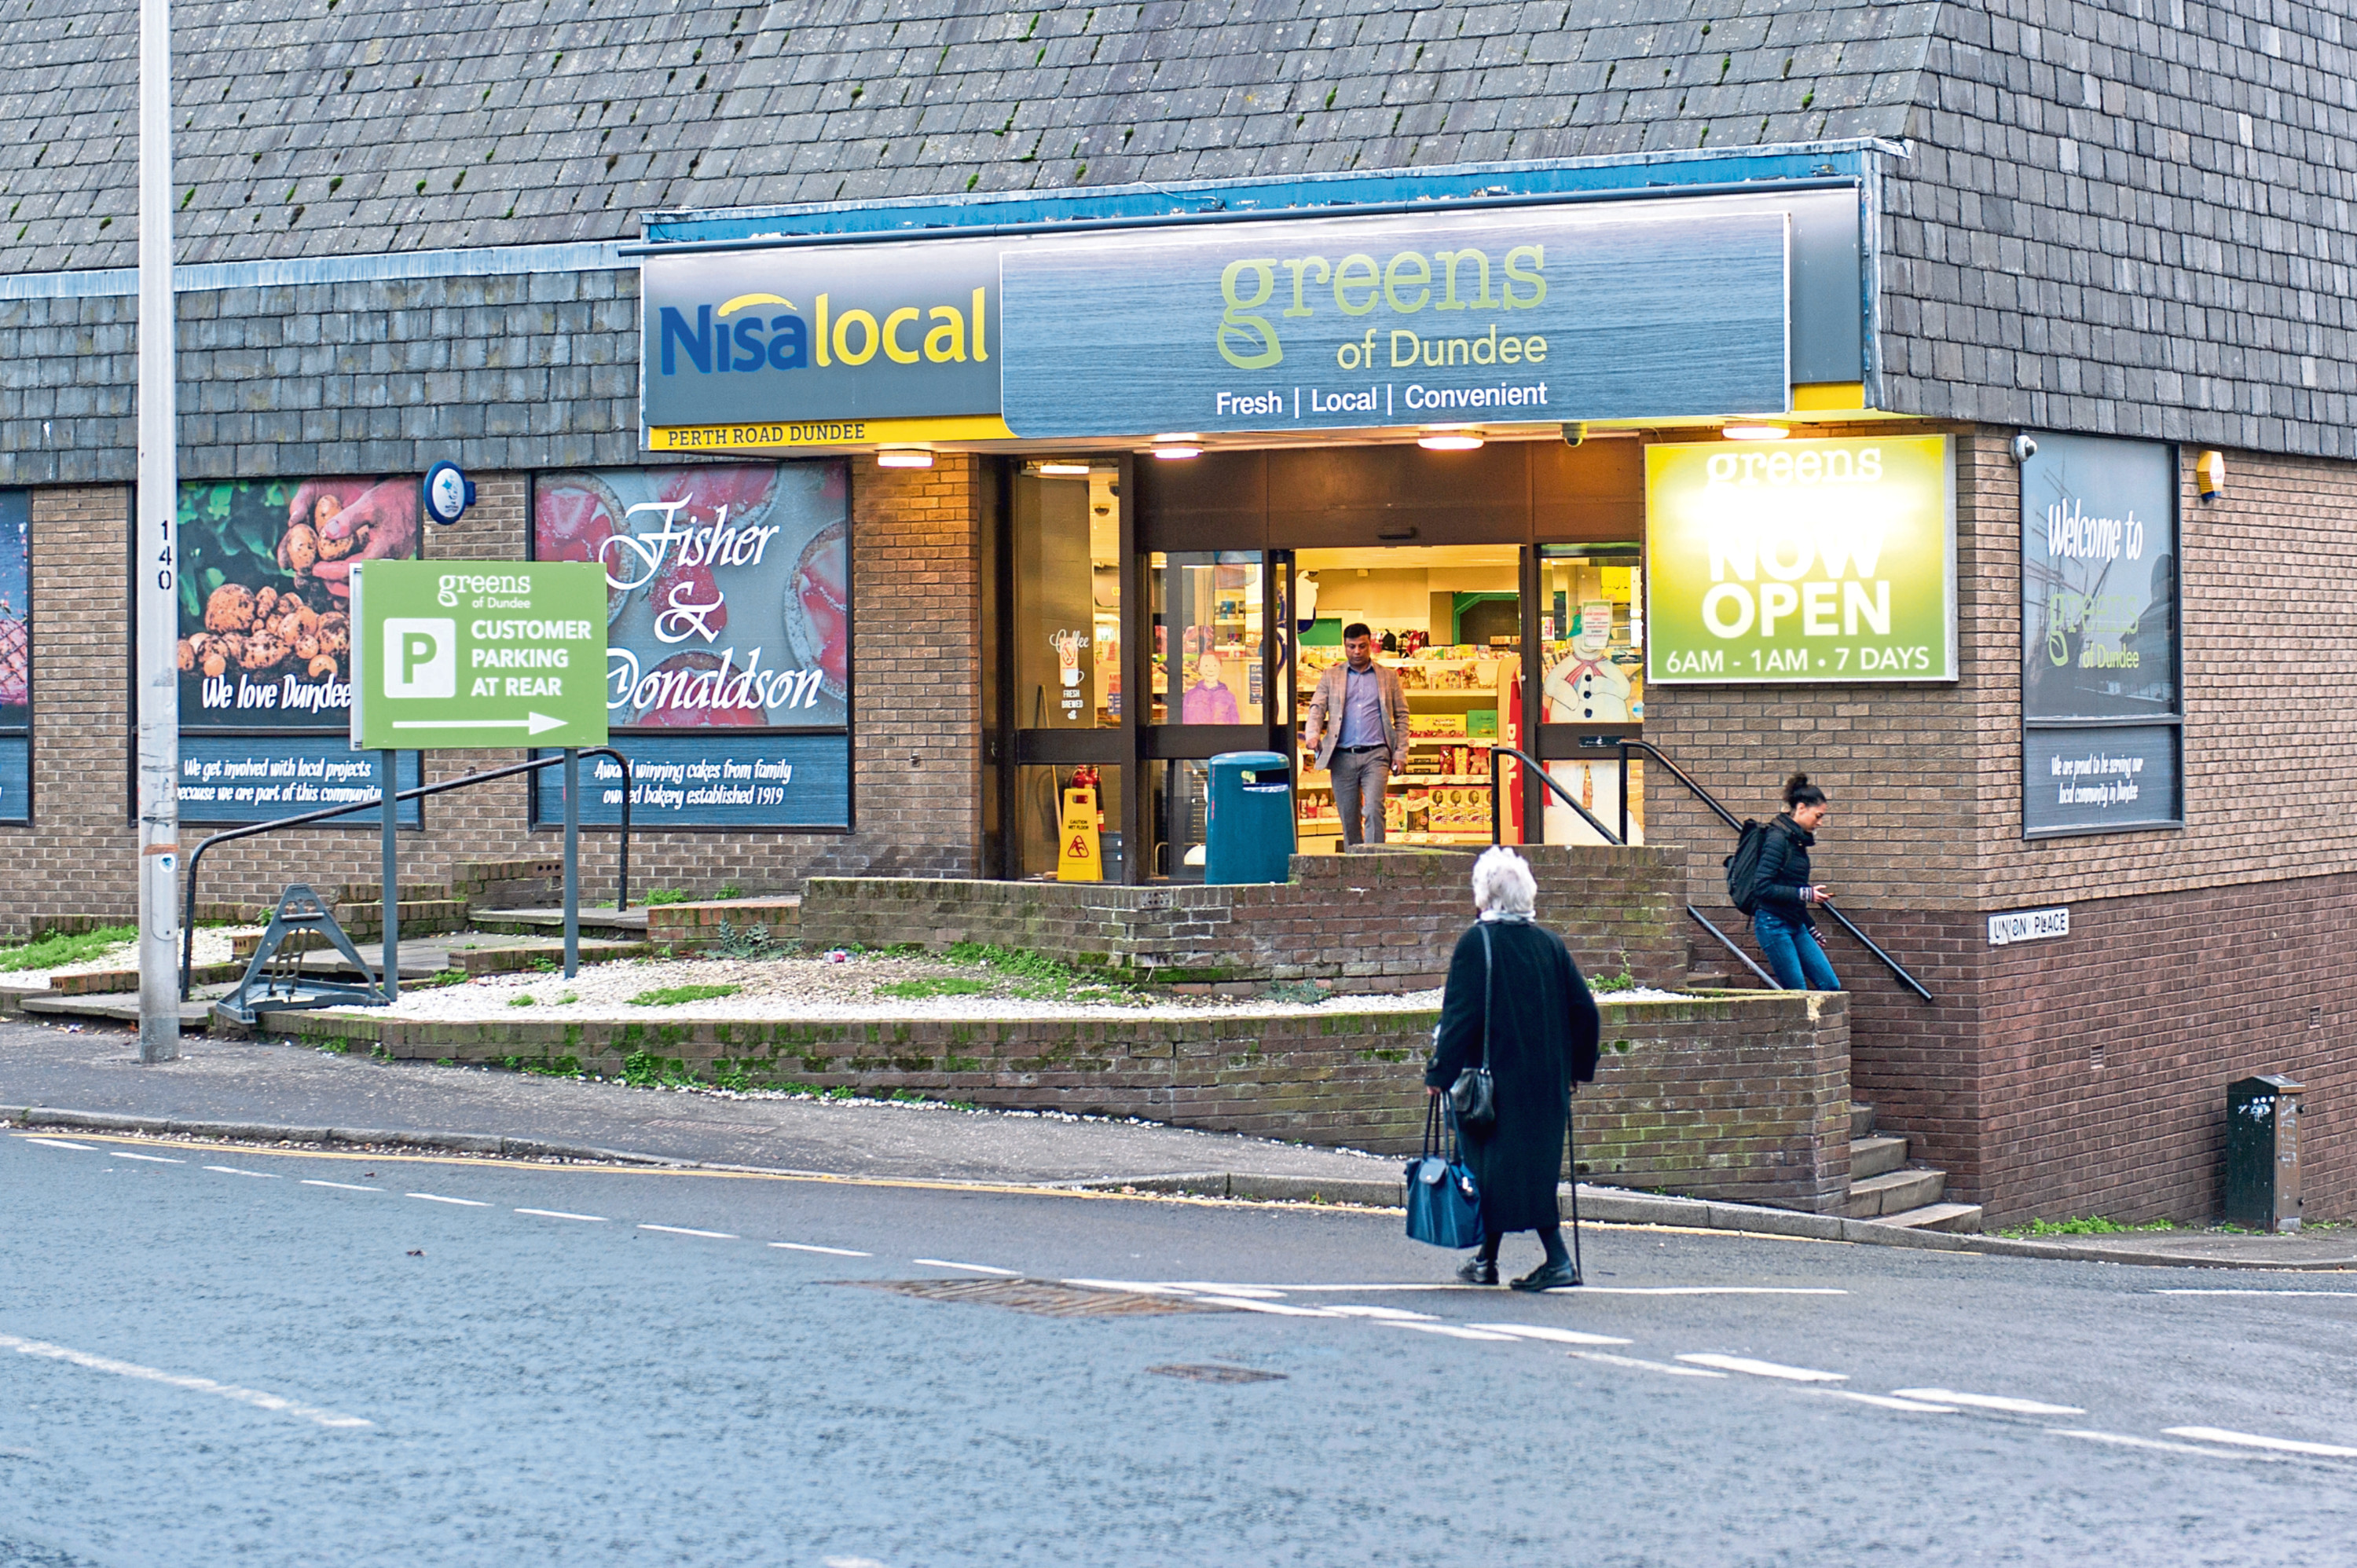 The Greens of Dundee store, run in conjunction with Nisa Local